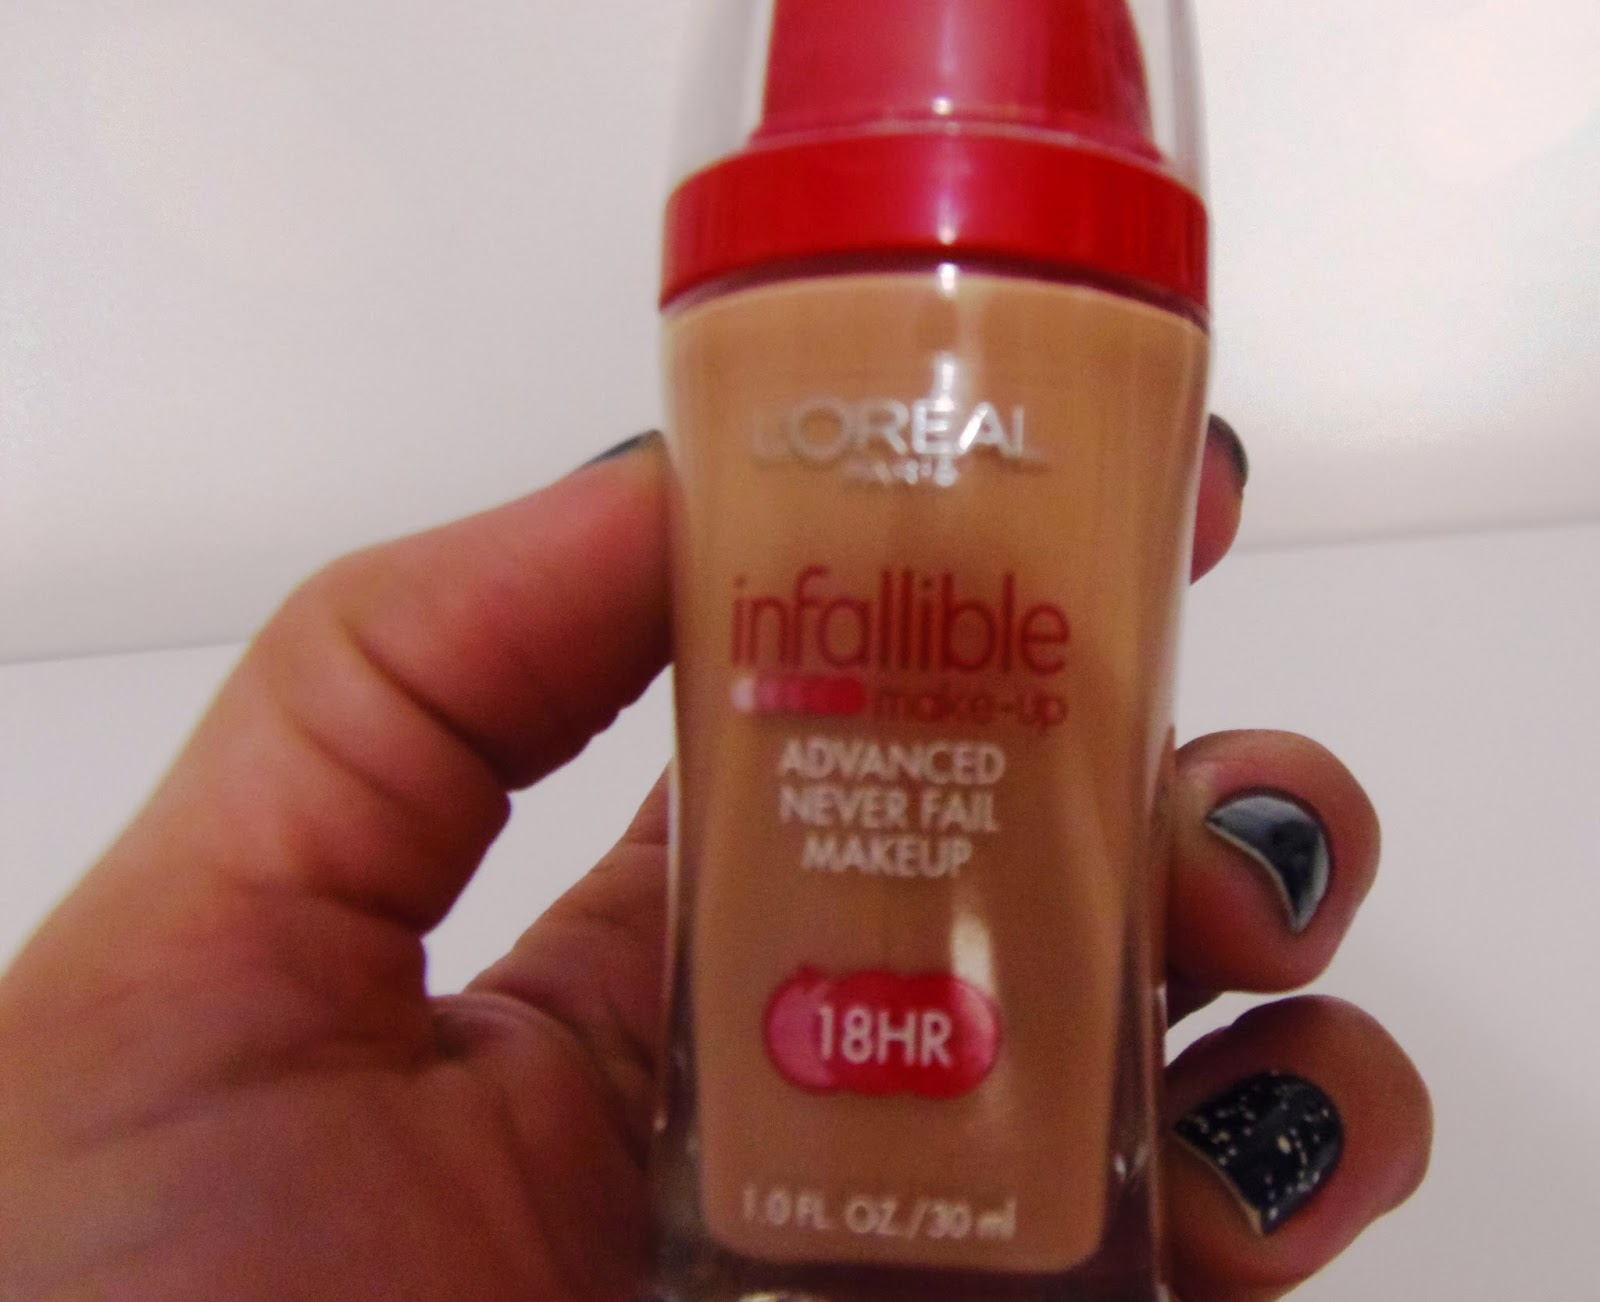 Base Infalible Make-up da L'oreal